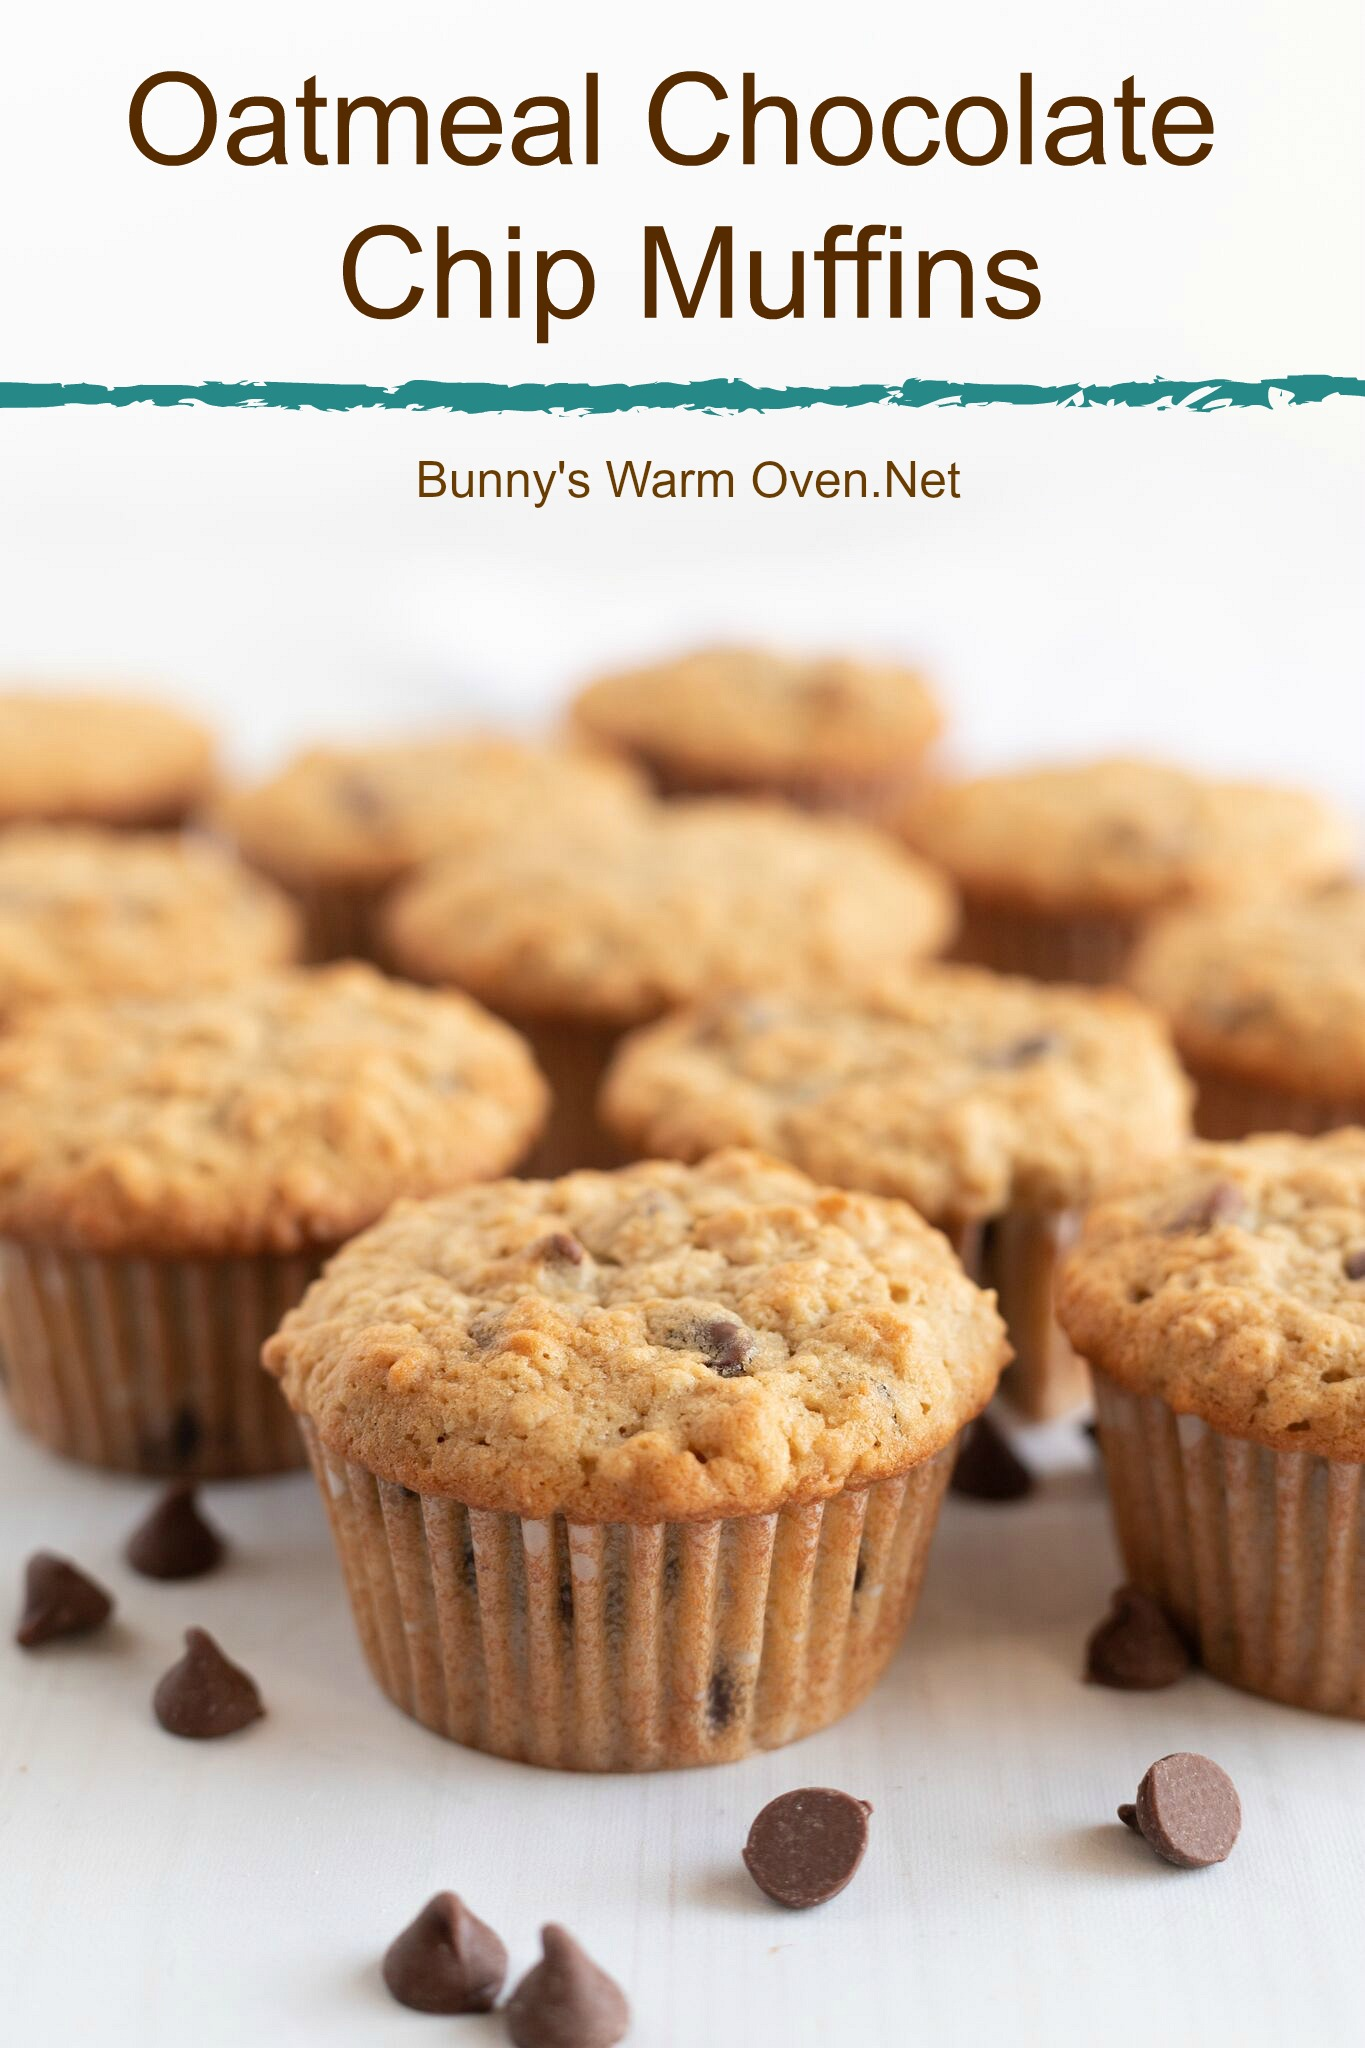 Oatmeal Chocolate Chip Muffins via @BunnysWarmOven